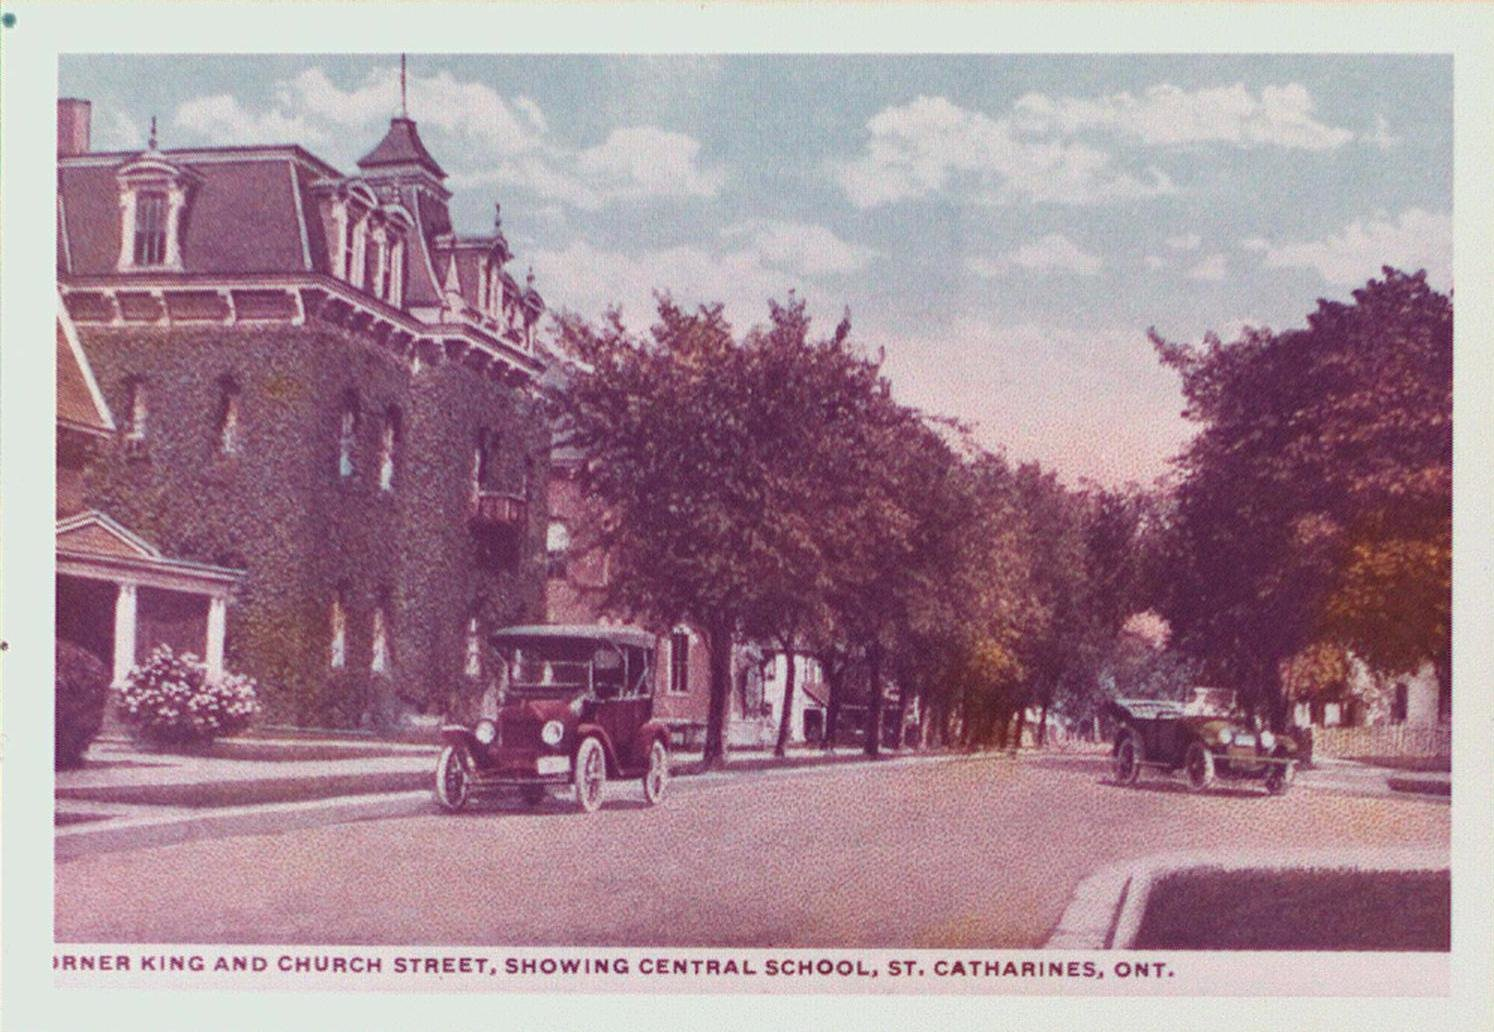 King Street and Church Street, showing Central School.